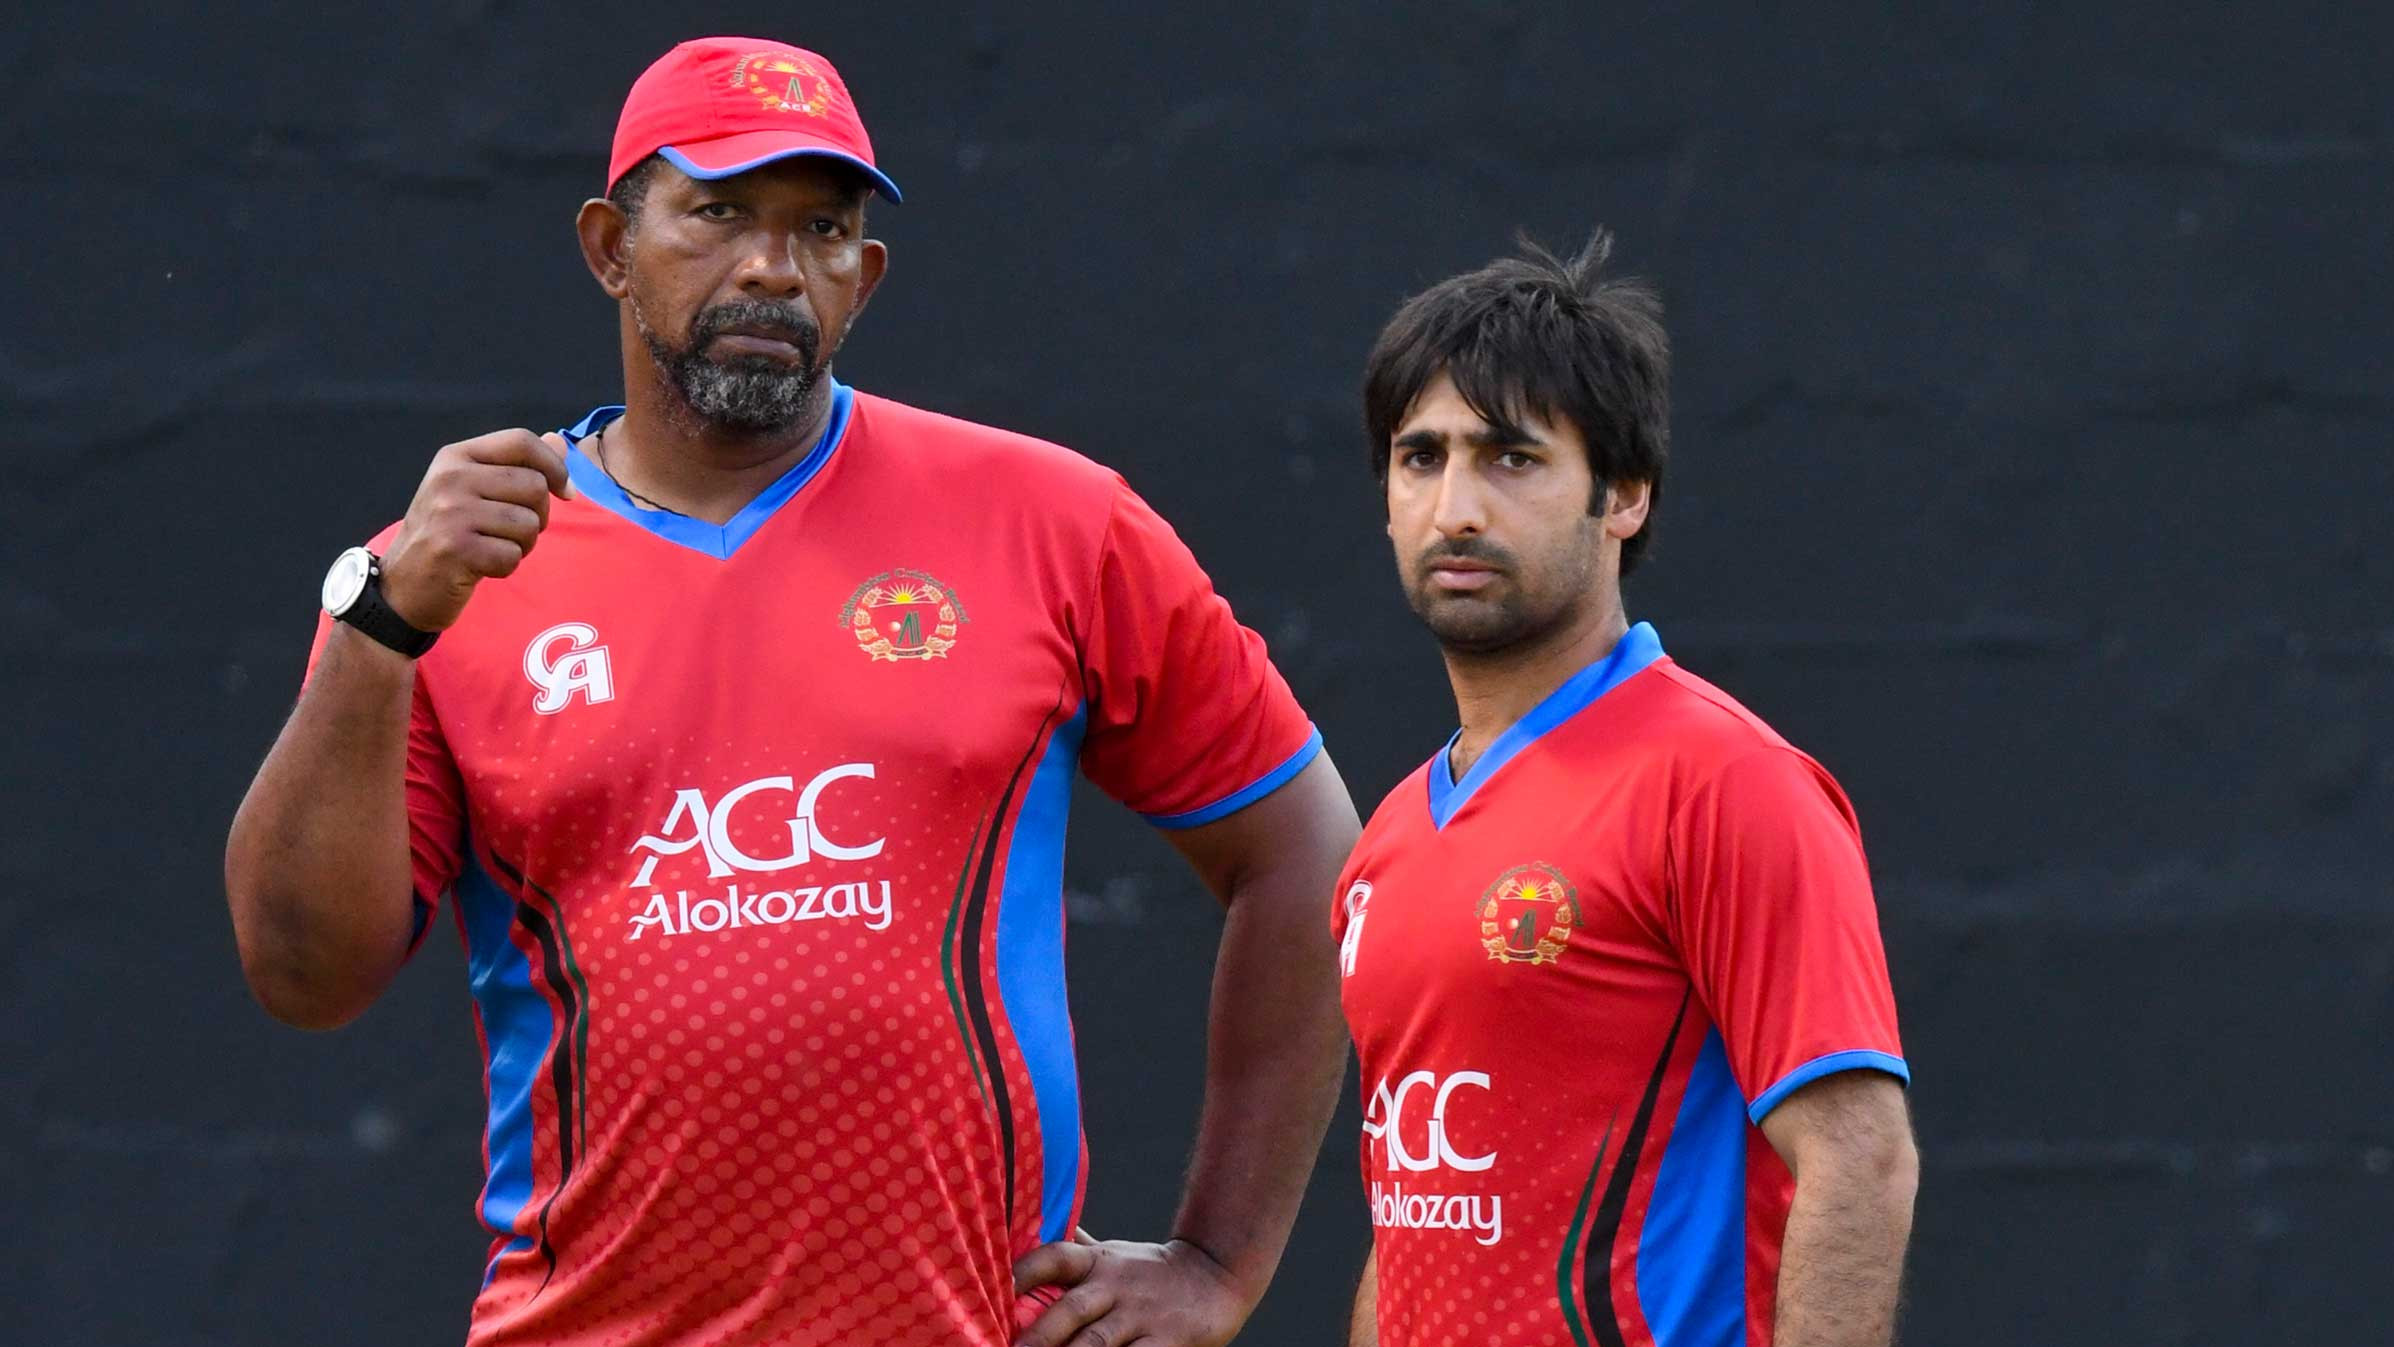 Batting needs a push in Afghanistan cricket, says coach Phil Simmons